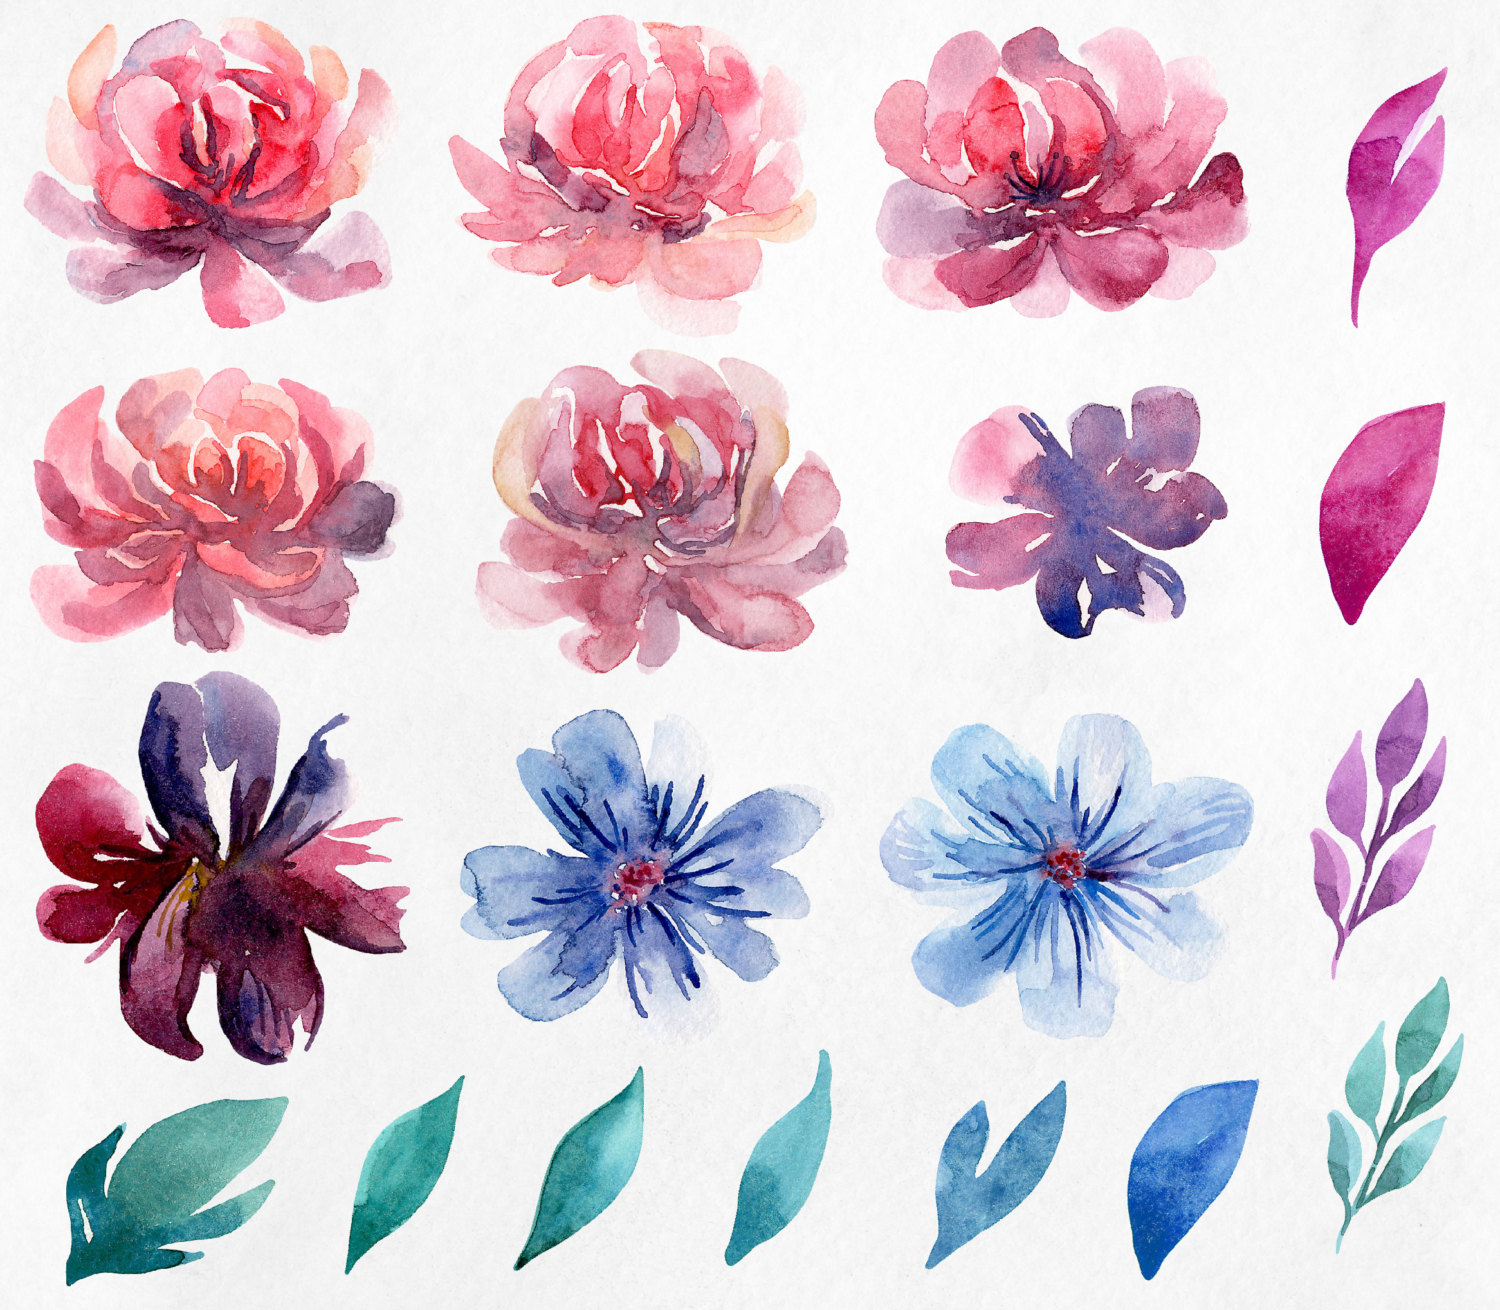 Peony clipart abstract watercolor This clip clipart Pink hand